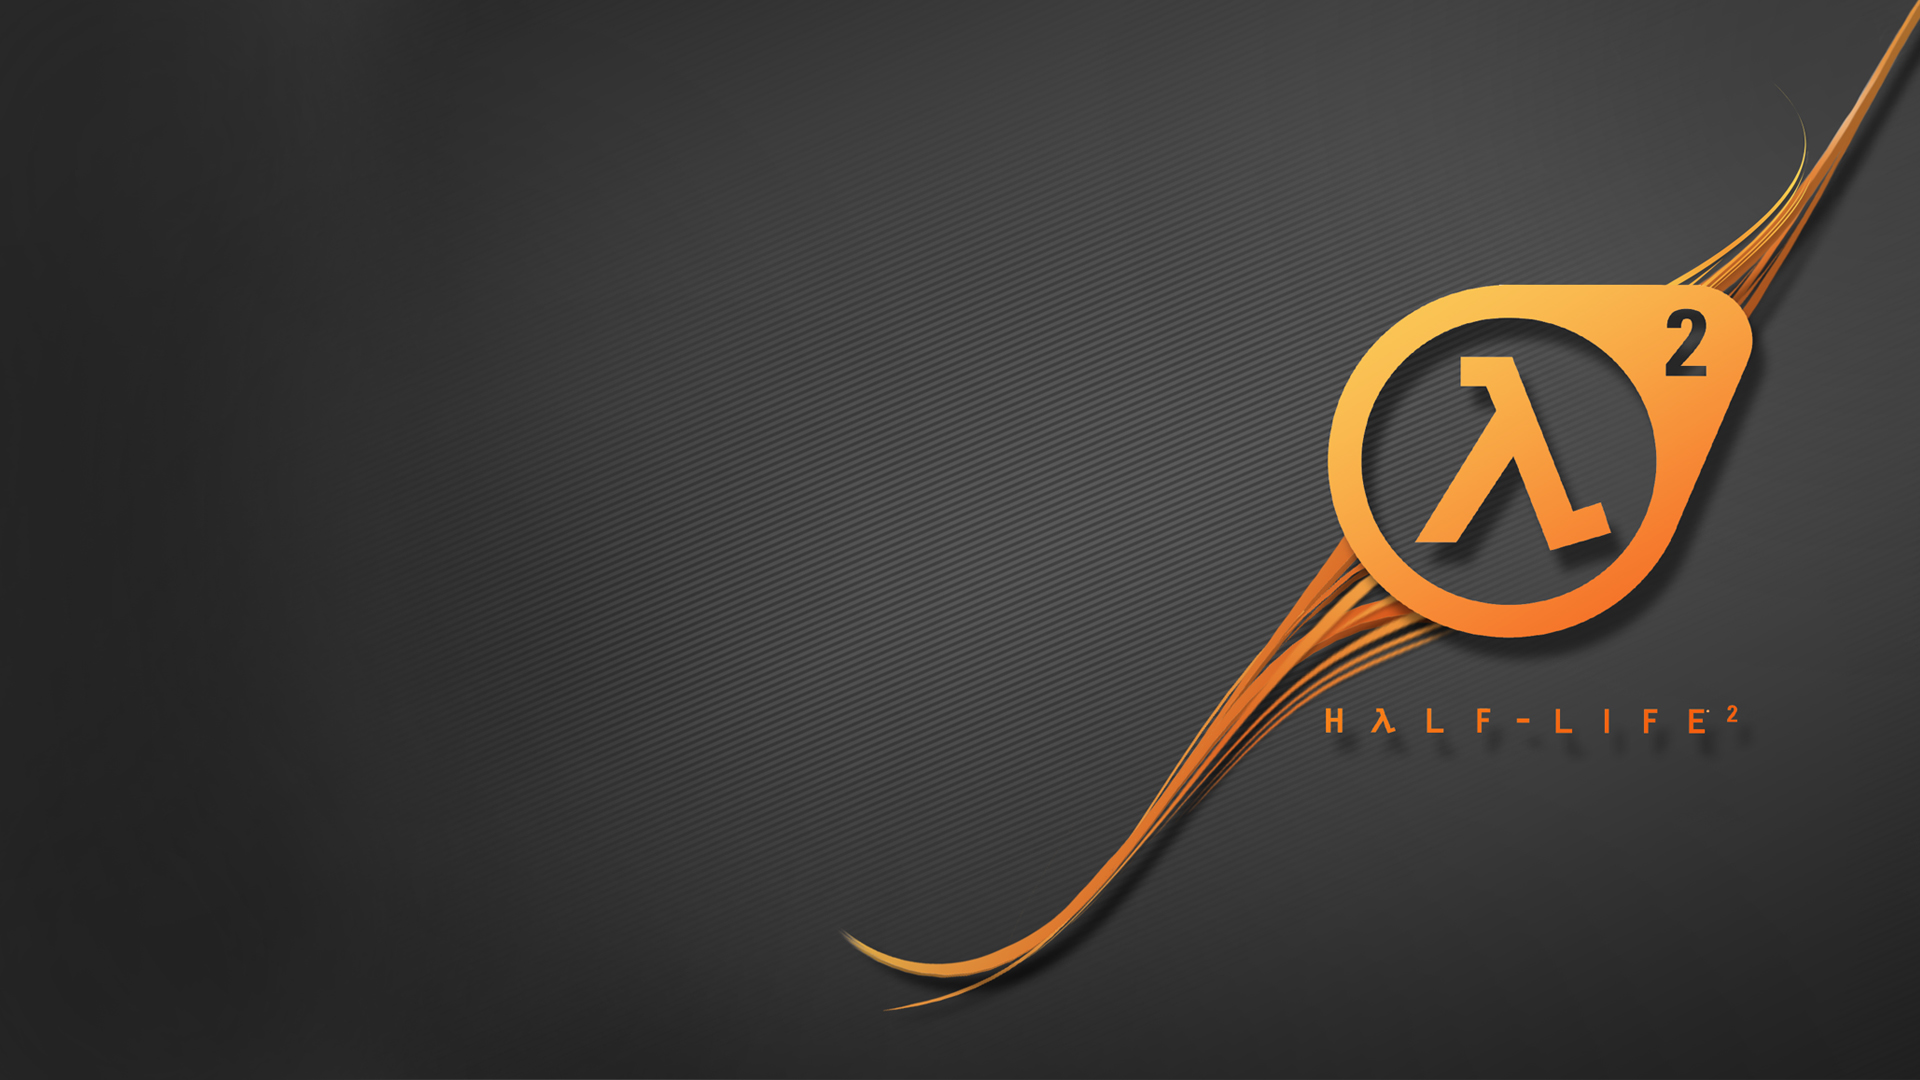 Half Life Black Wallpaper Hot Hd 1920x1080px